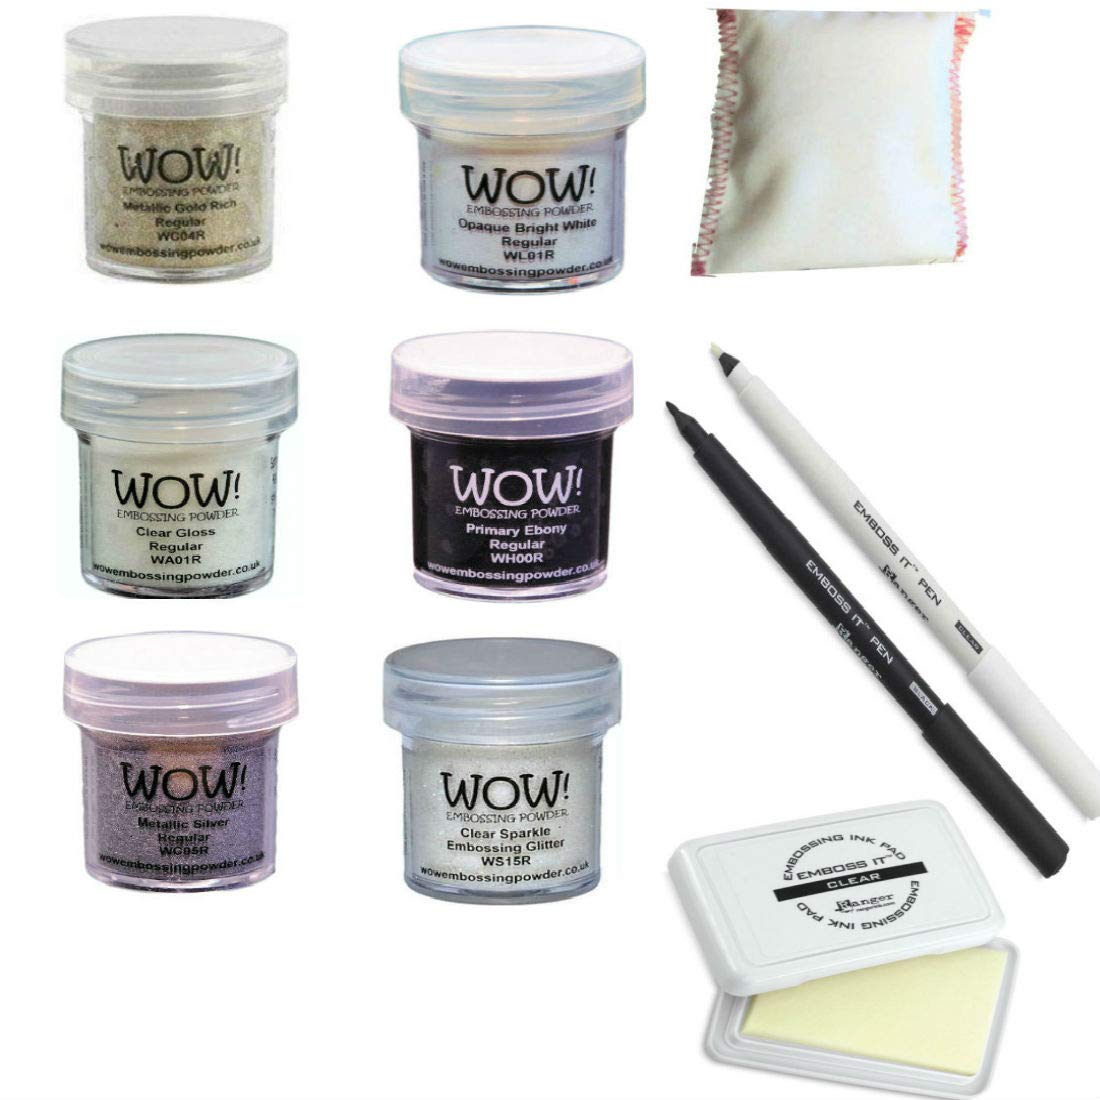 Embossing Starter Kit with Powders, Foam Pad, Static Pad and Pens (Black/White)